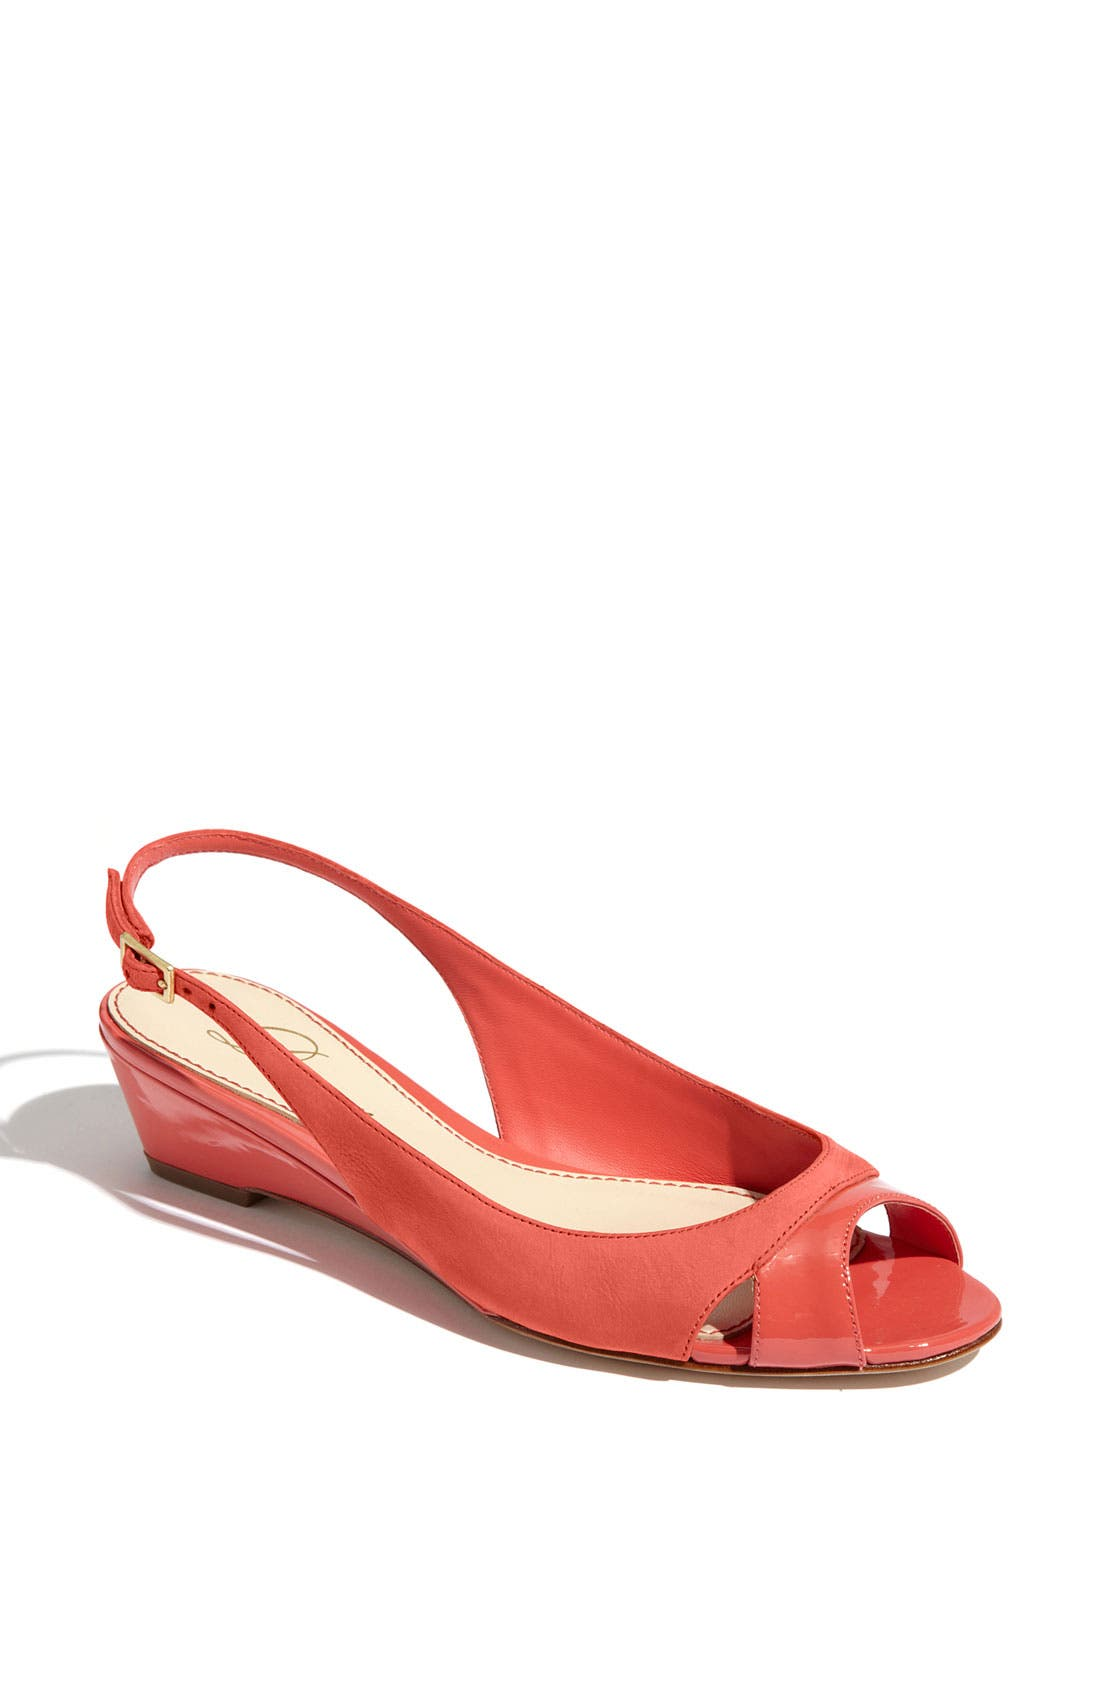 Alternate Image 1 Selected - Delman 'Capri' Sandal